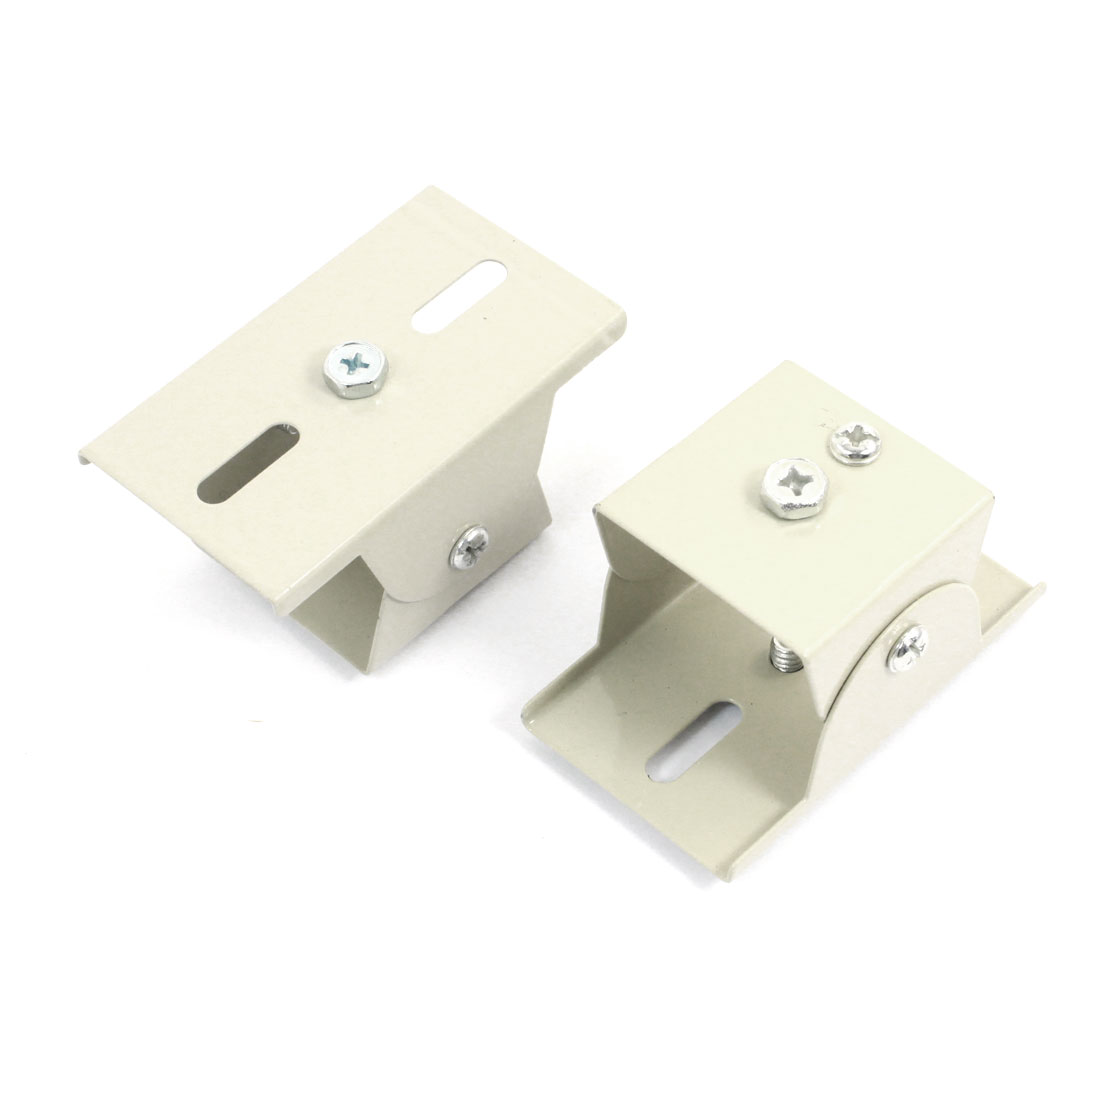 2pcs Wall Mounted 180 Degree Rotation CCTV DVR Camera Bracket